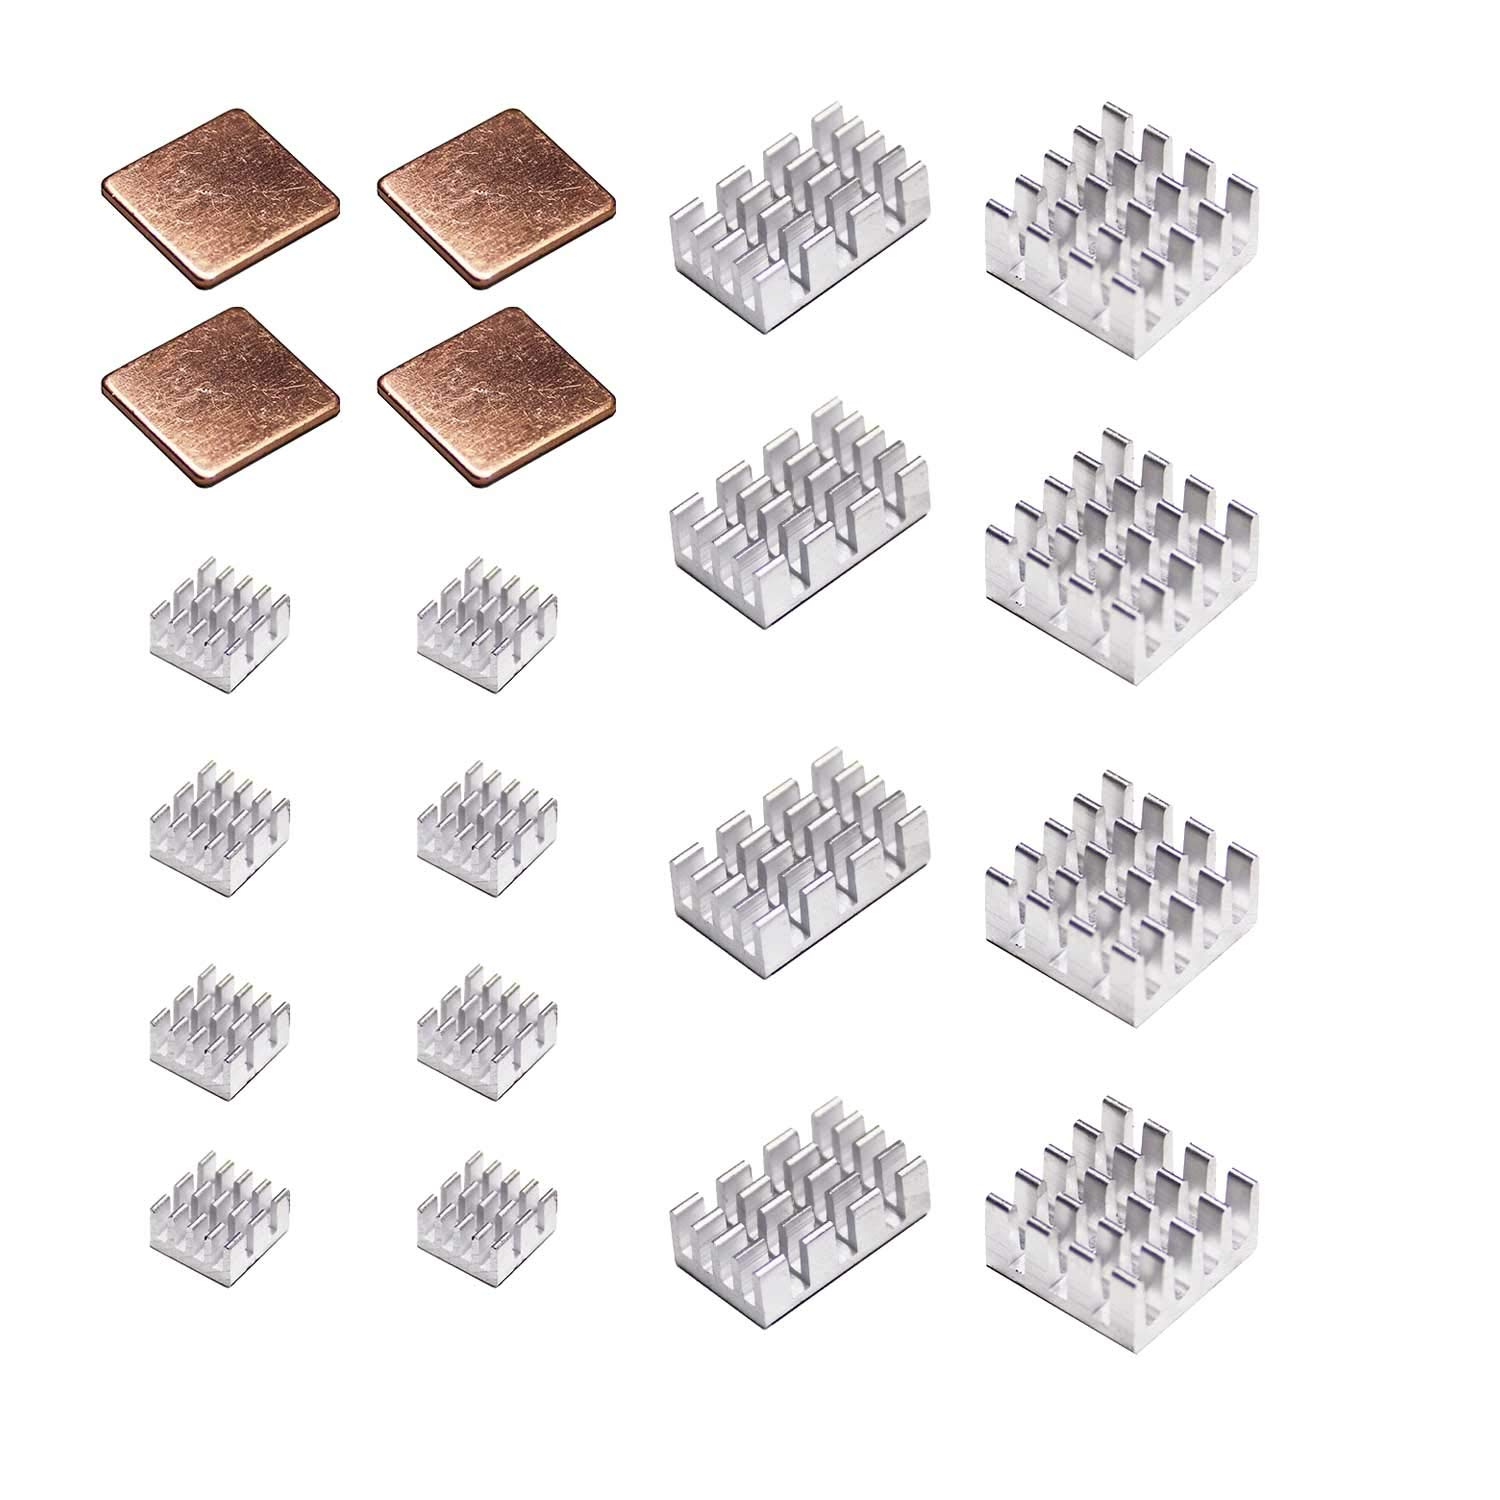 Pastall Raspberry Pi Heat Sink Cooler and Copper Heatsink for Raspberry Pi B B+ 2/3/4, Heatsink Copper Pad Shims with Adhesive Tape (4copper+16aluminum)